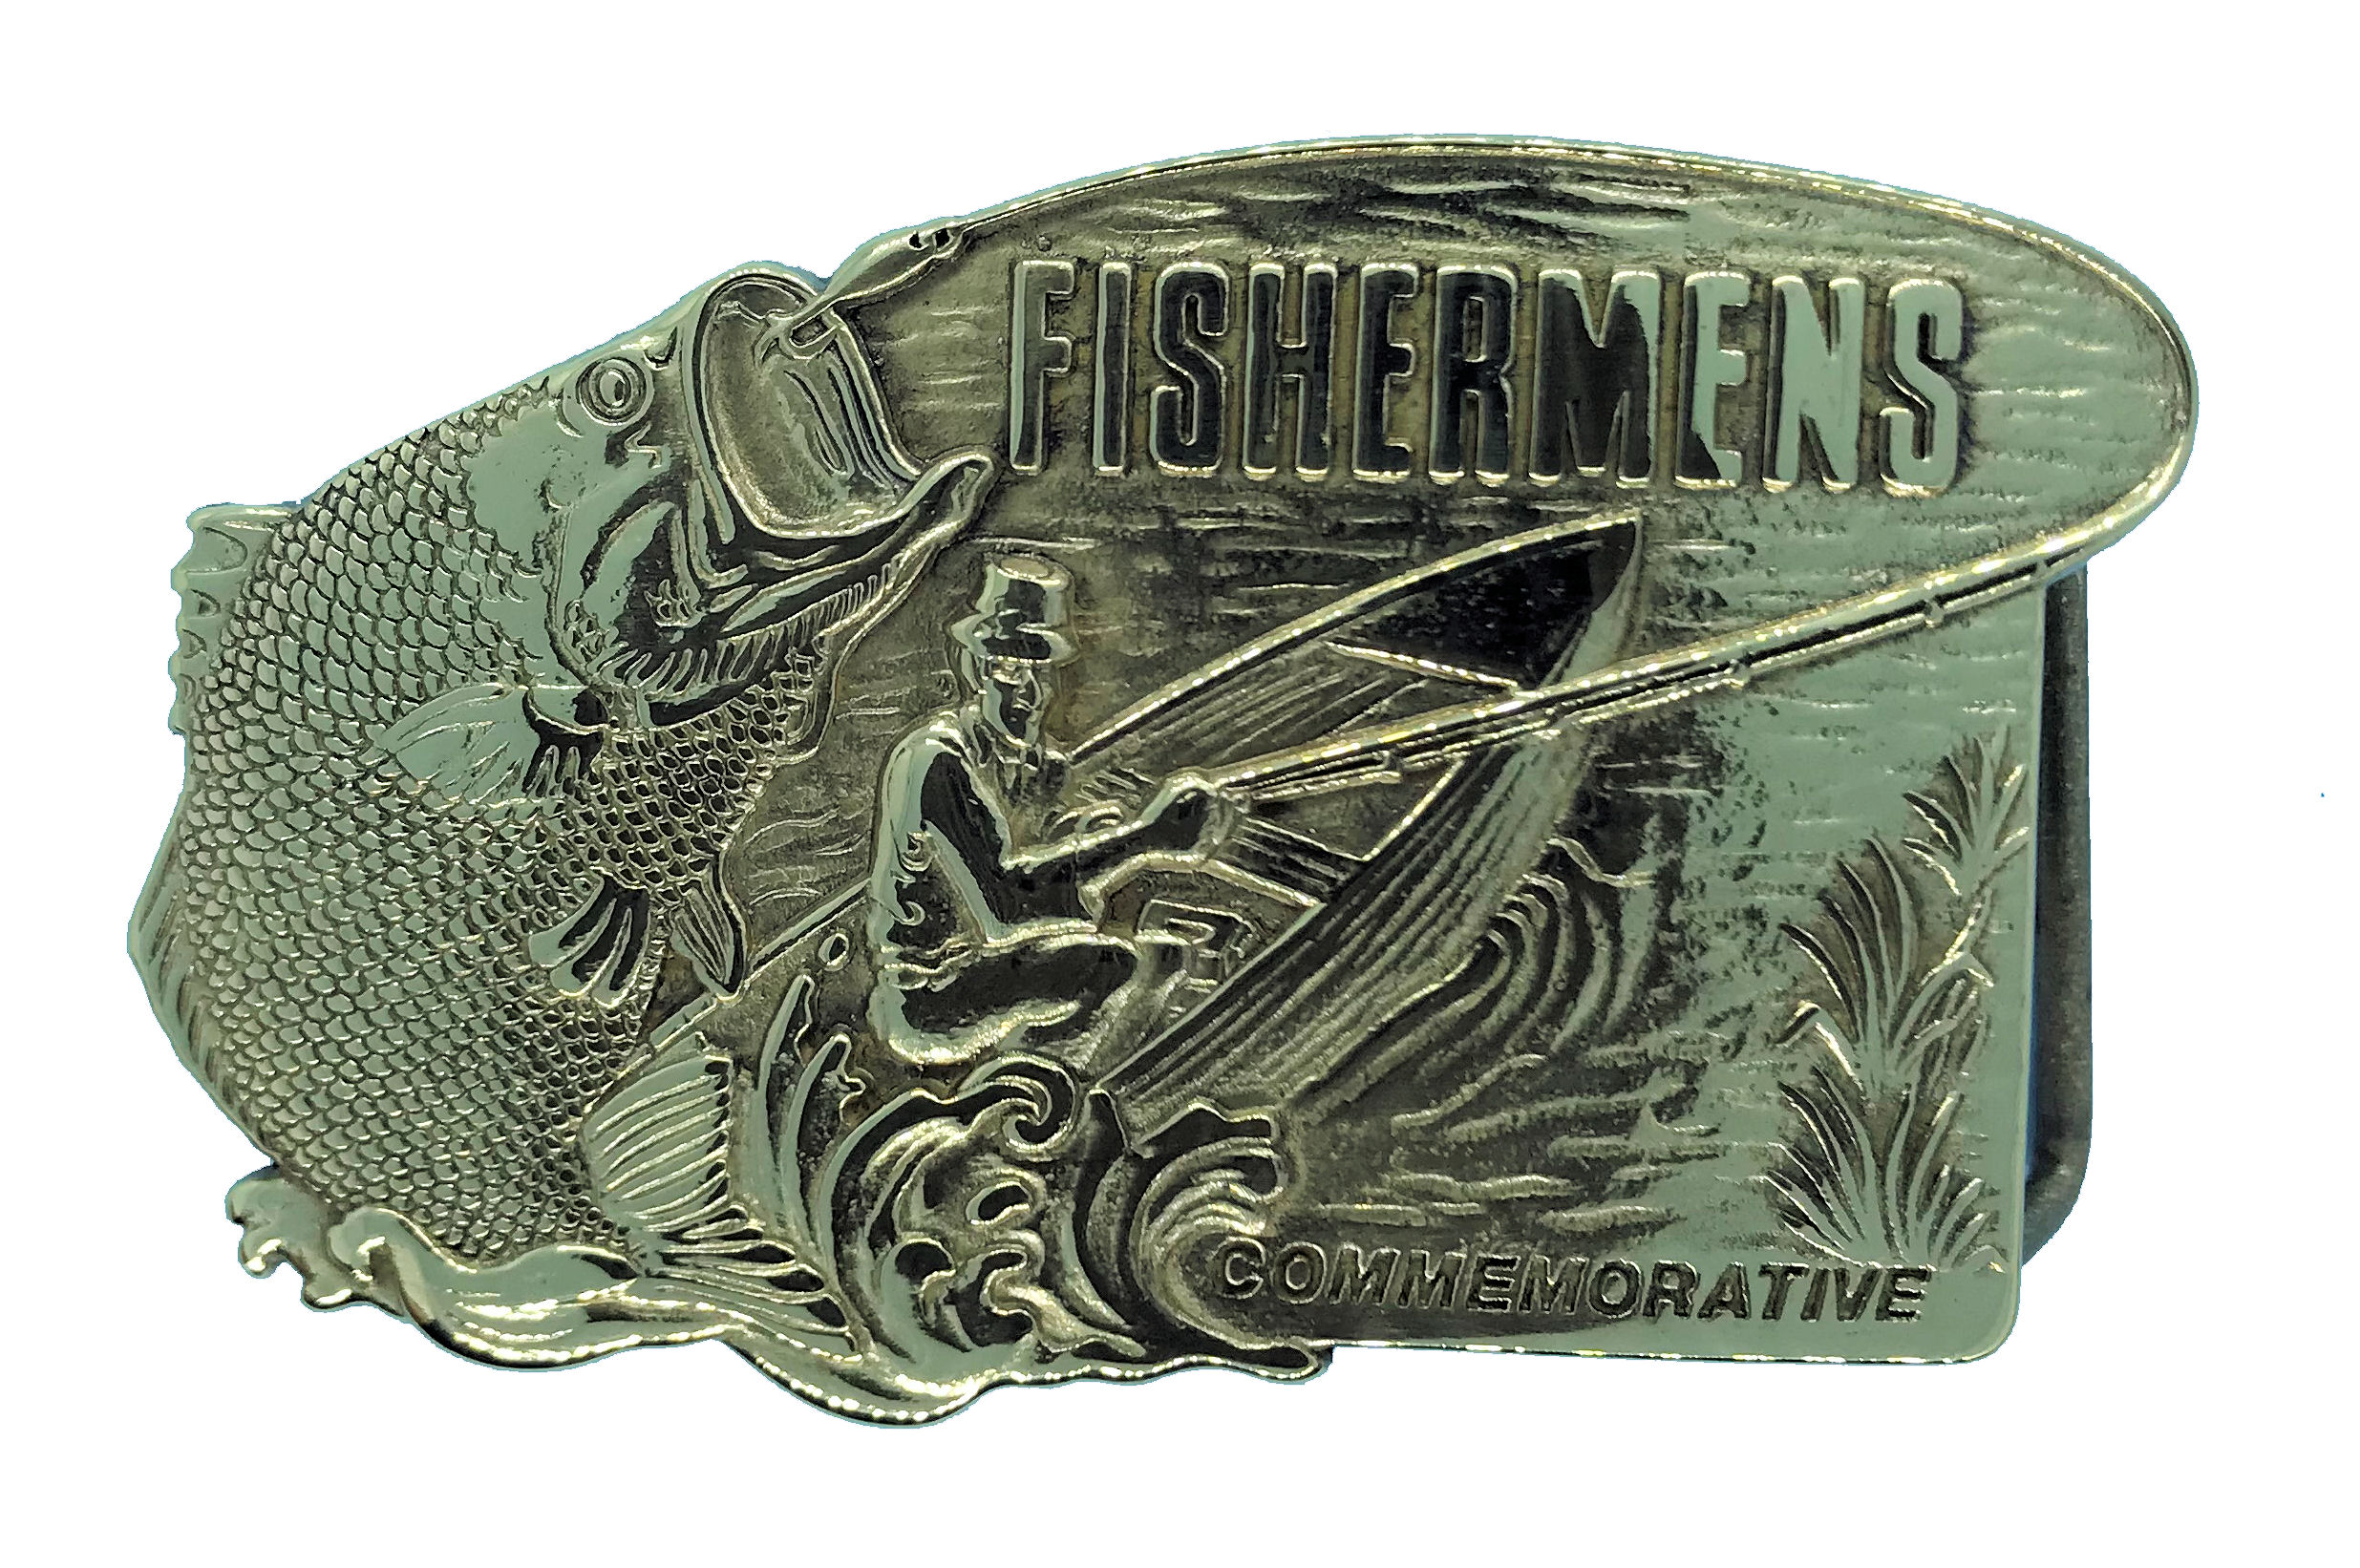 commemorative fisherman